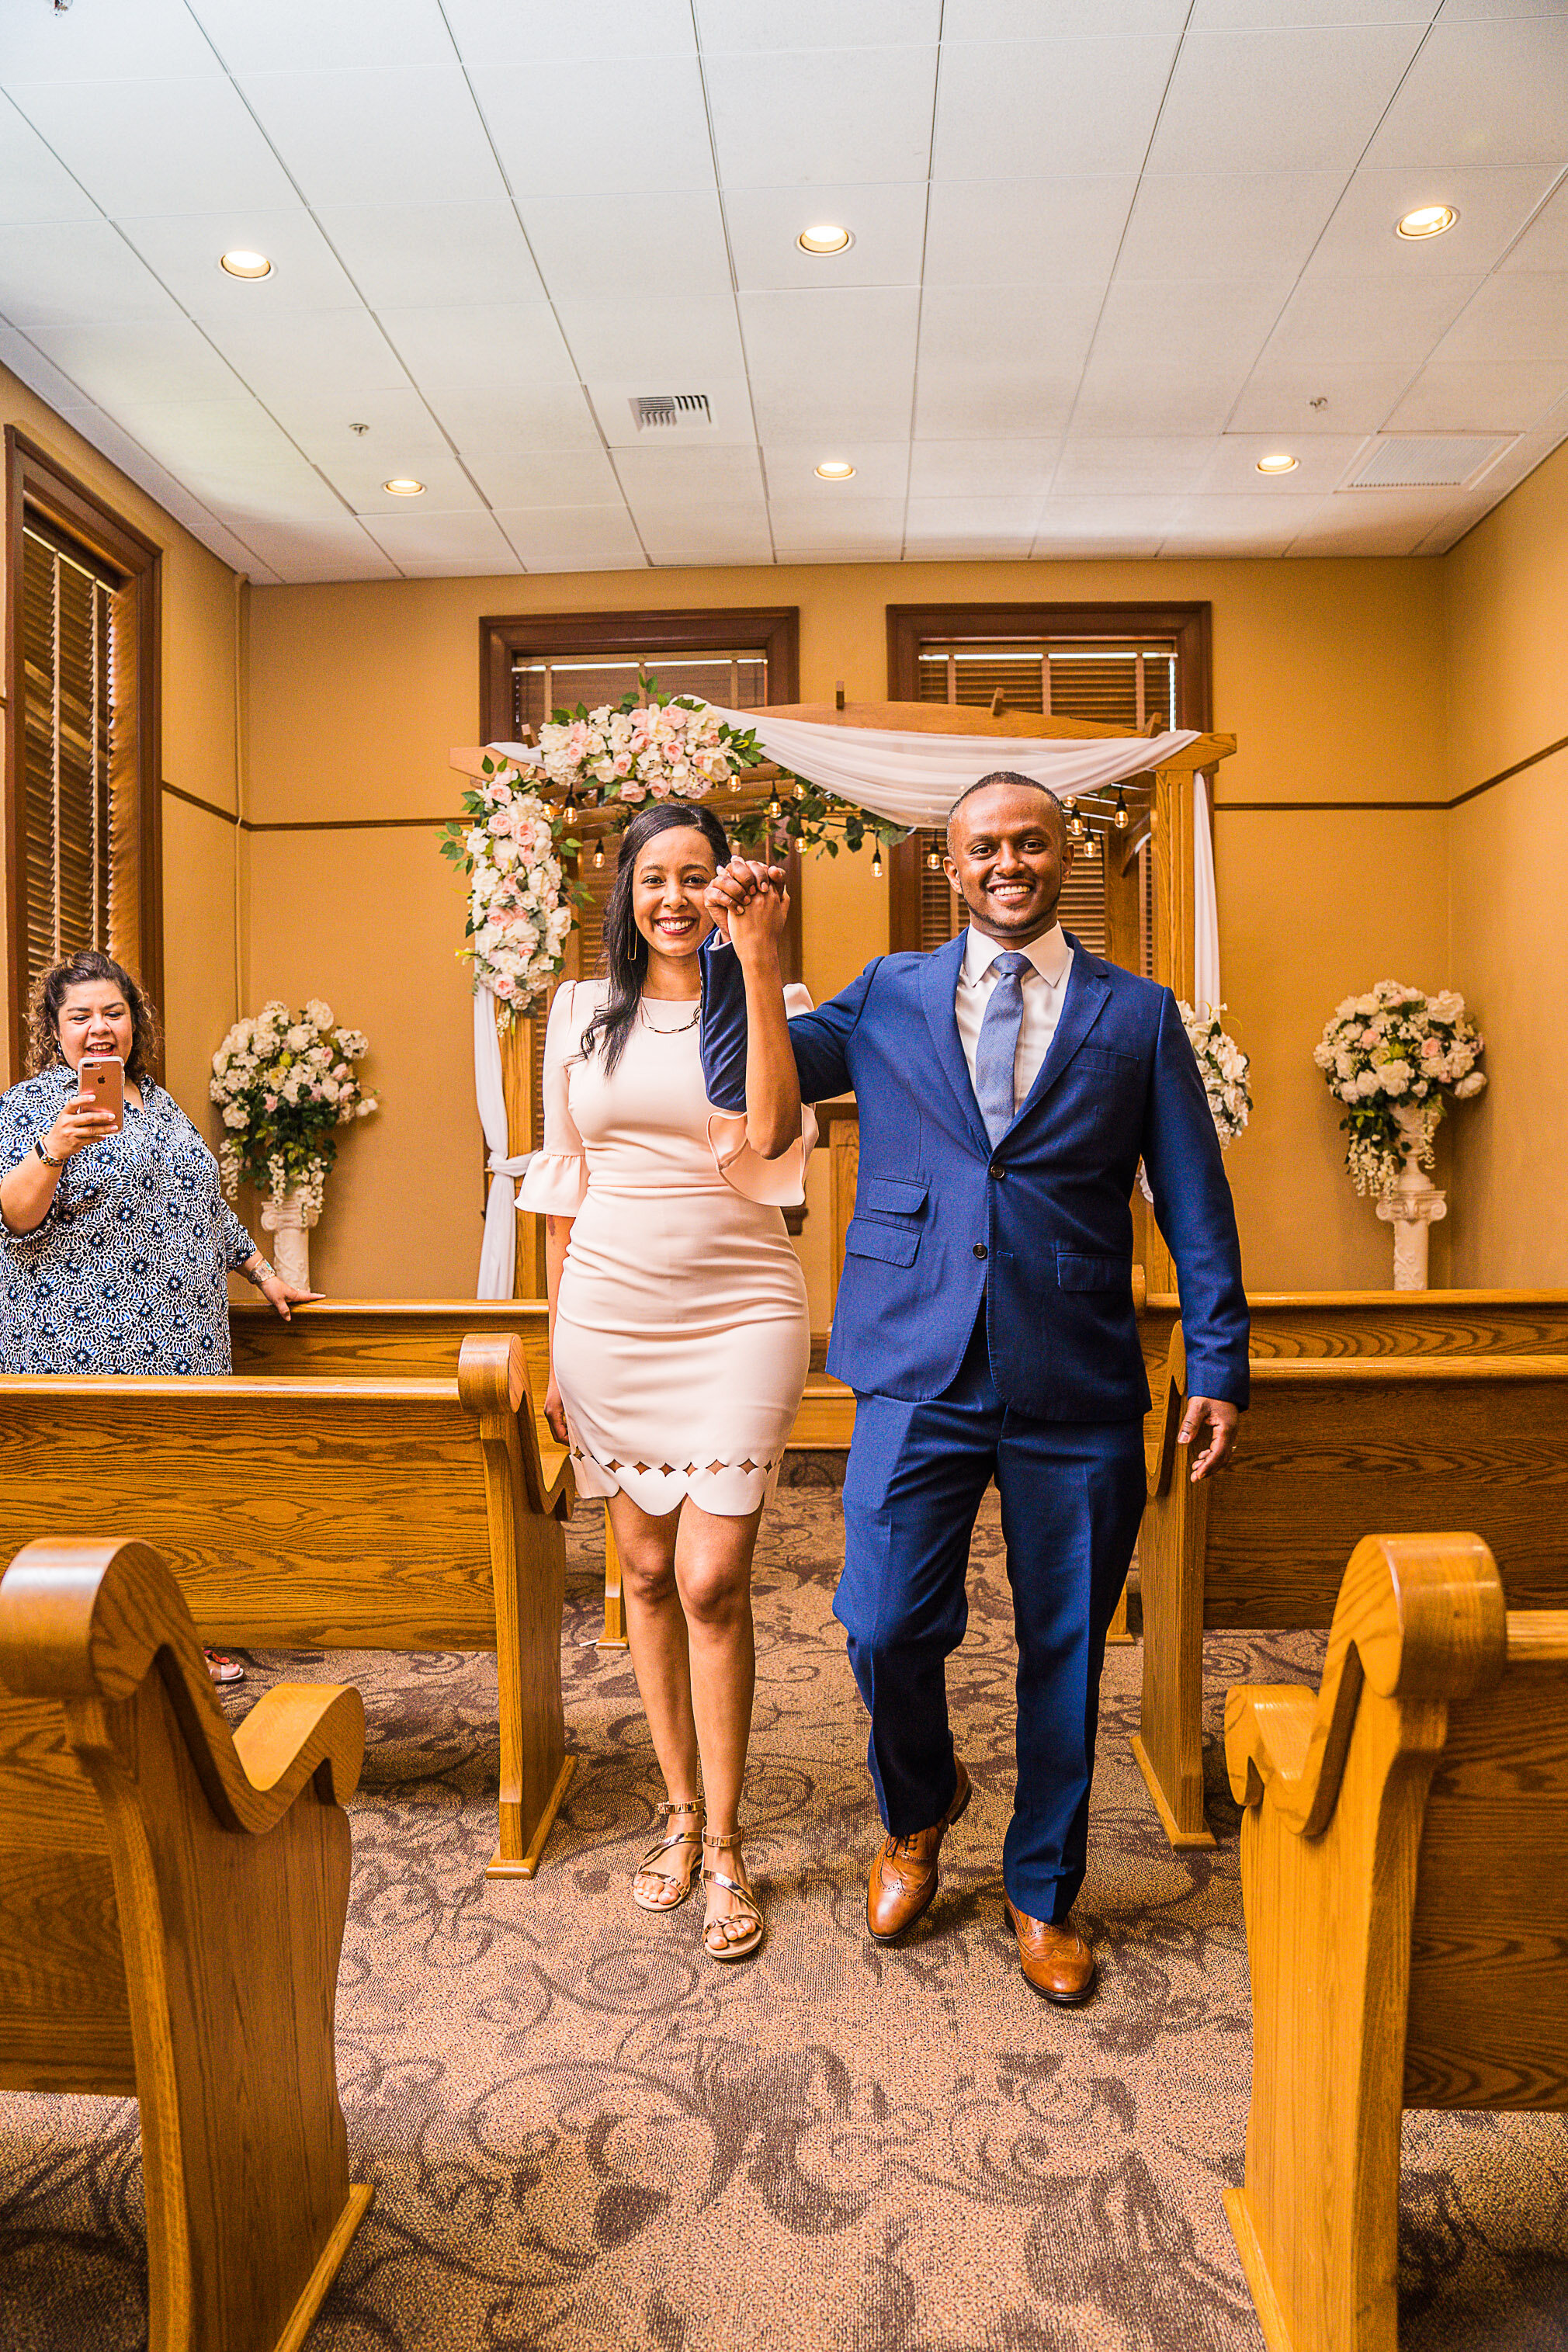 sewit-elopement-orange-county-santa-ana-courthouse-18.jpg